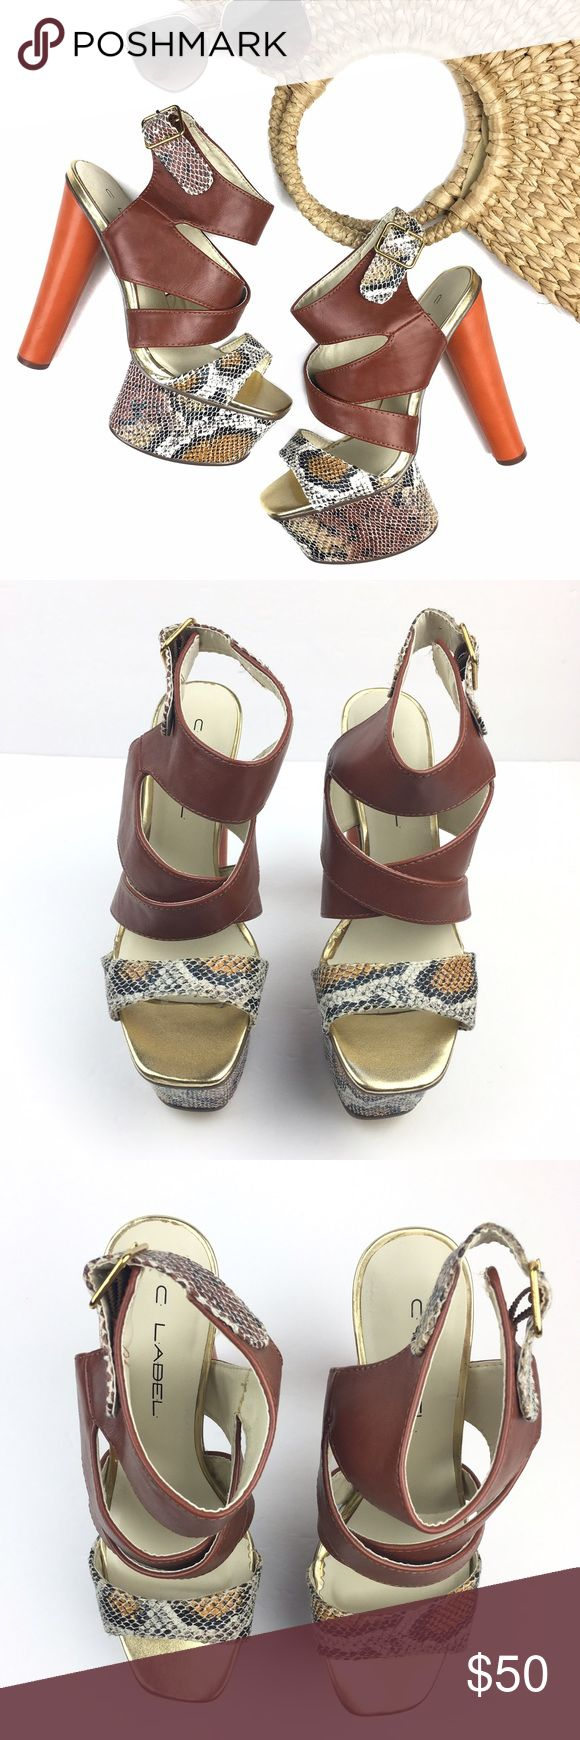 "NWOB Brown Orange Snakeprint Platform Heel Sandals These babies are to die for! These stunning open toe heeled sandals feature an orange 5.5"" heel, a 2"" snake print platform and camel crissscross ankle straps. NWOB, excellent condition. Run true to size. C. Label Shoes Heels"